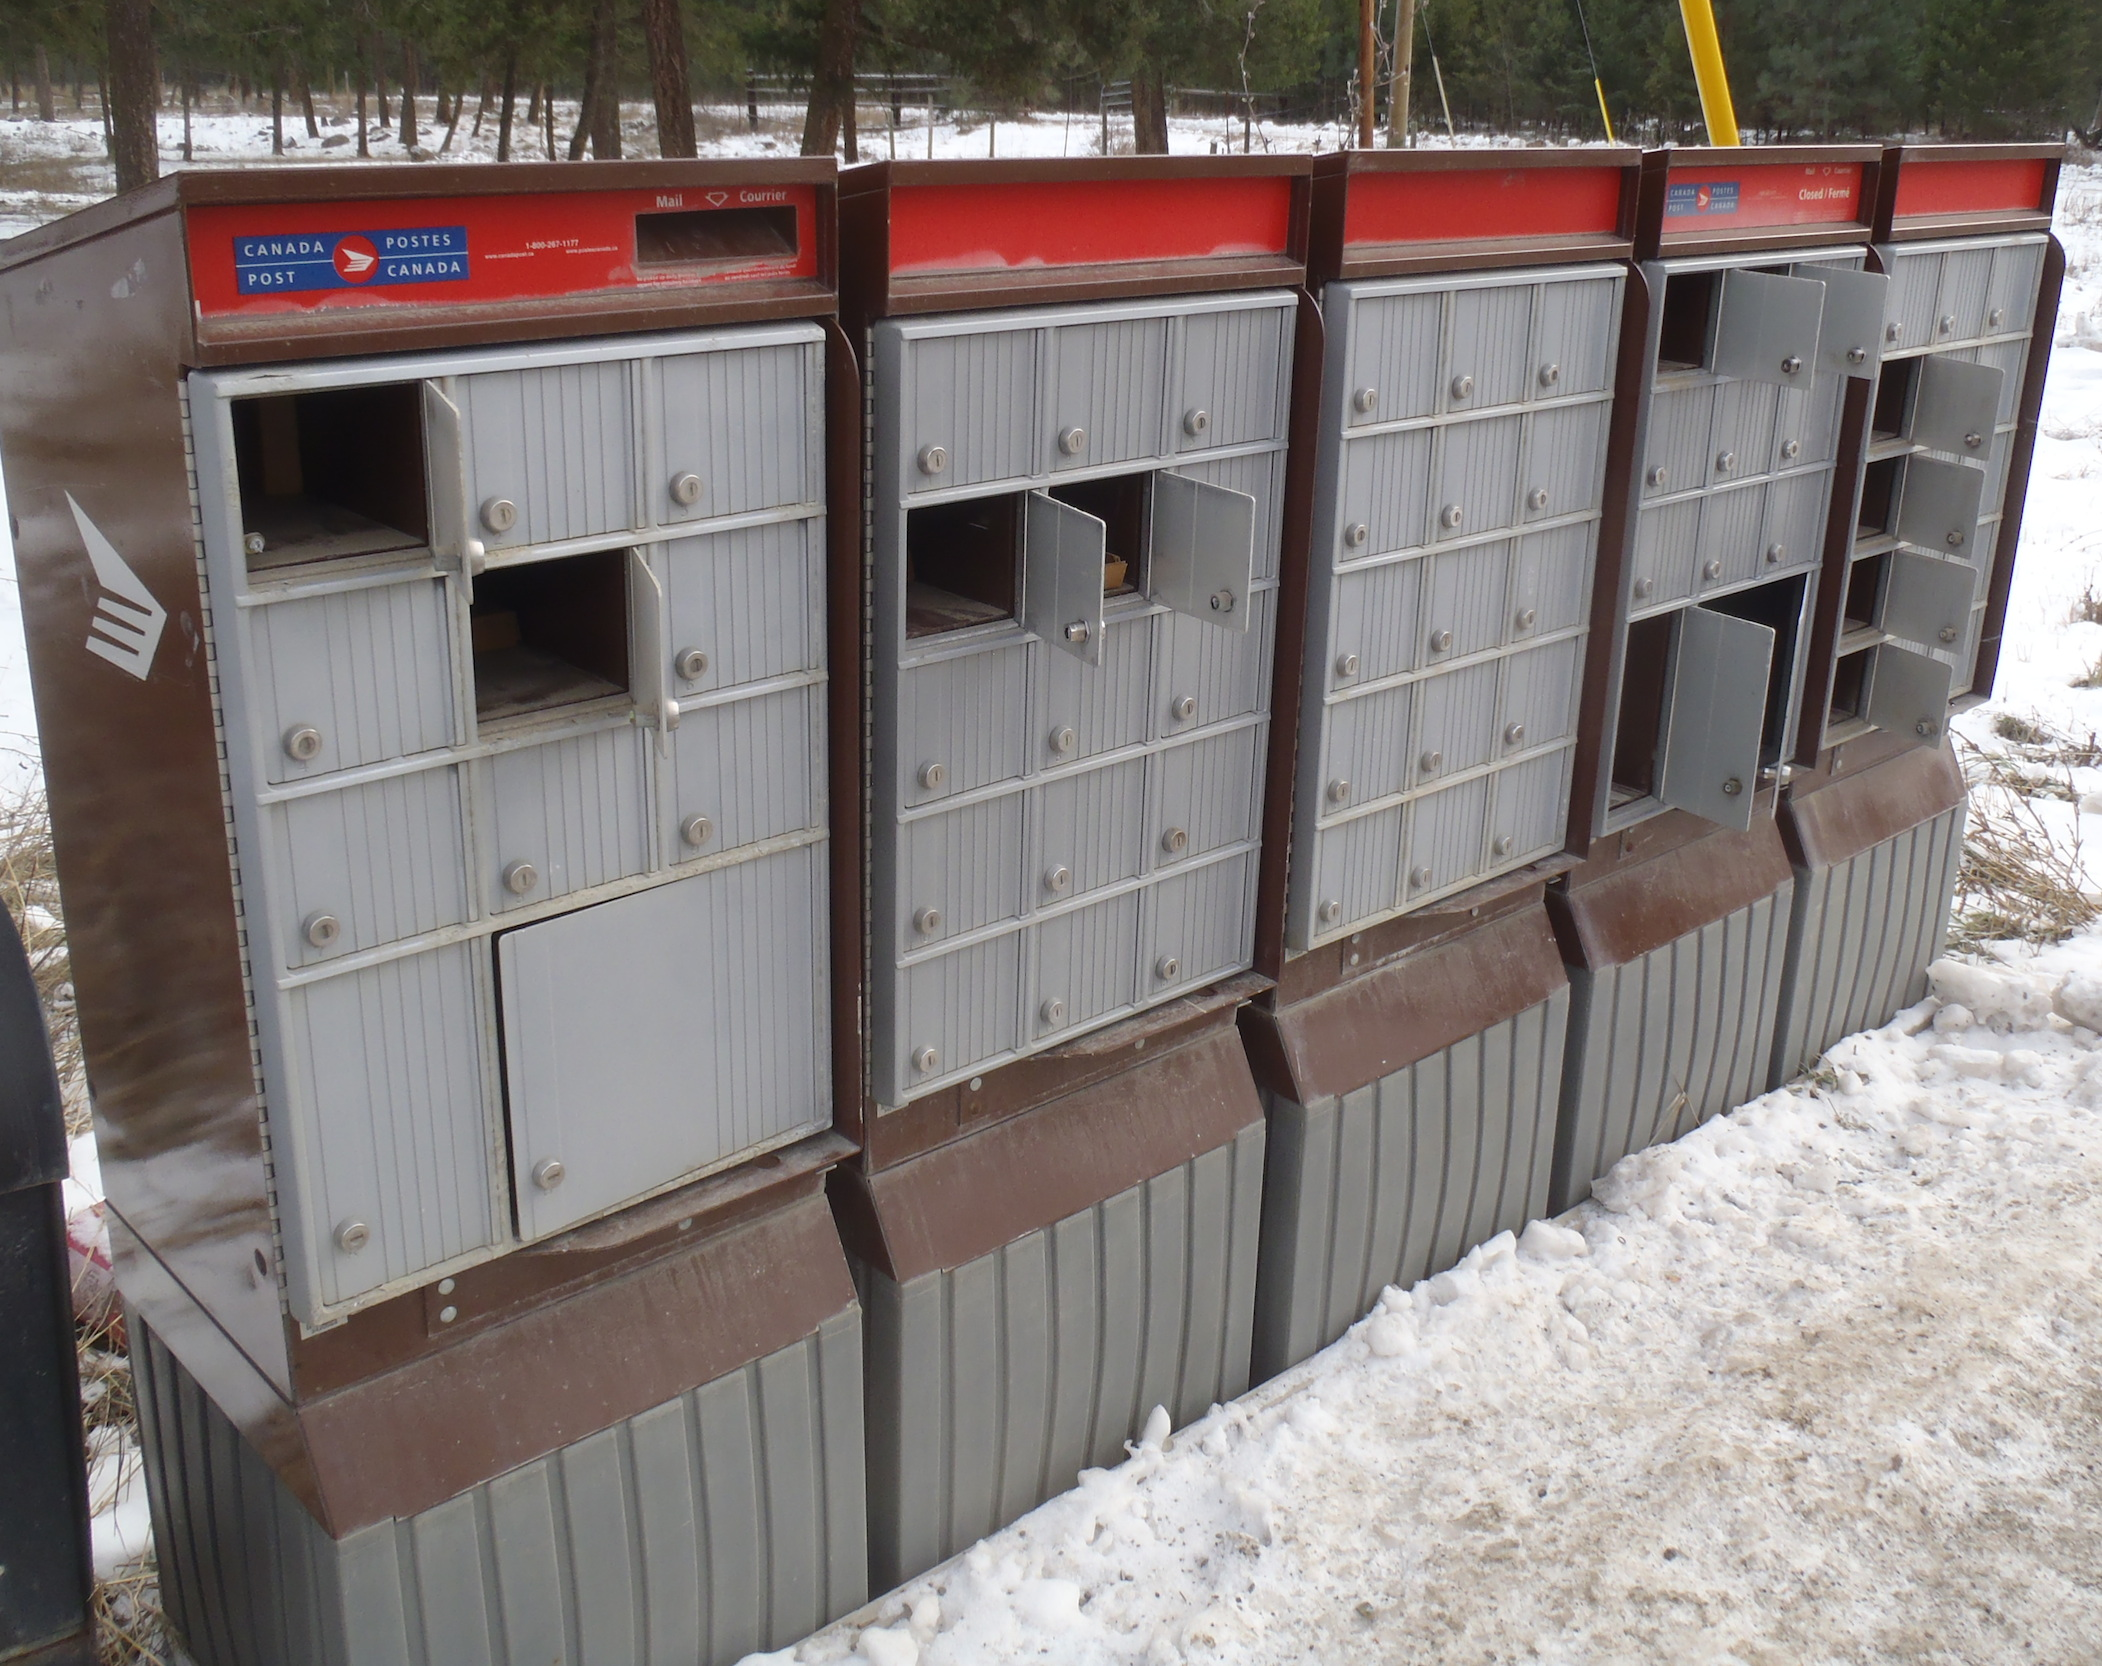 Community Mailboxes In Rural Areas A Target For Thieves